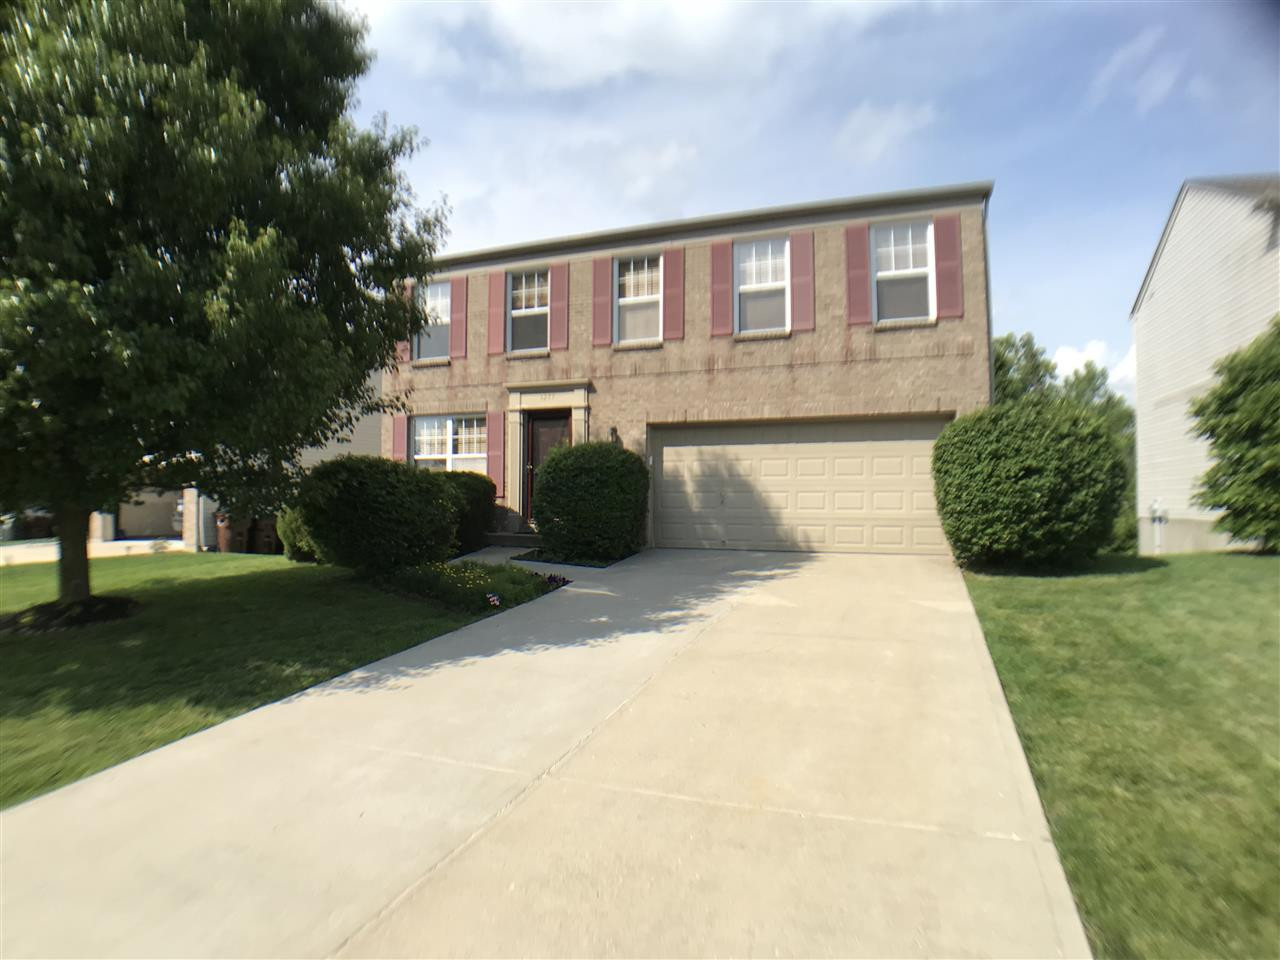 Photo 1 for 3277 Summitrun Dr Independence, KY 41051